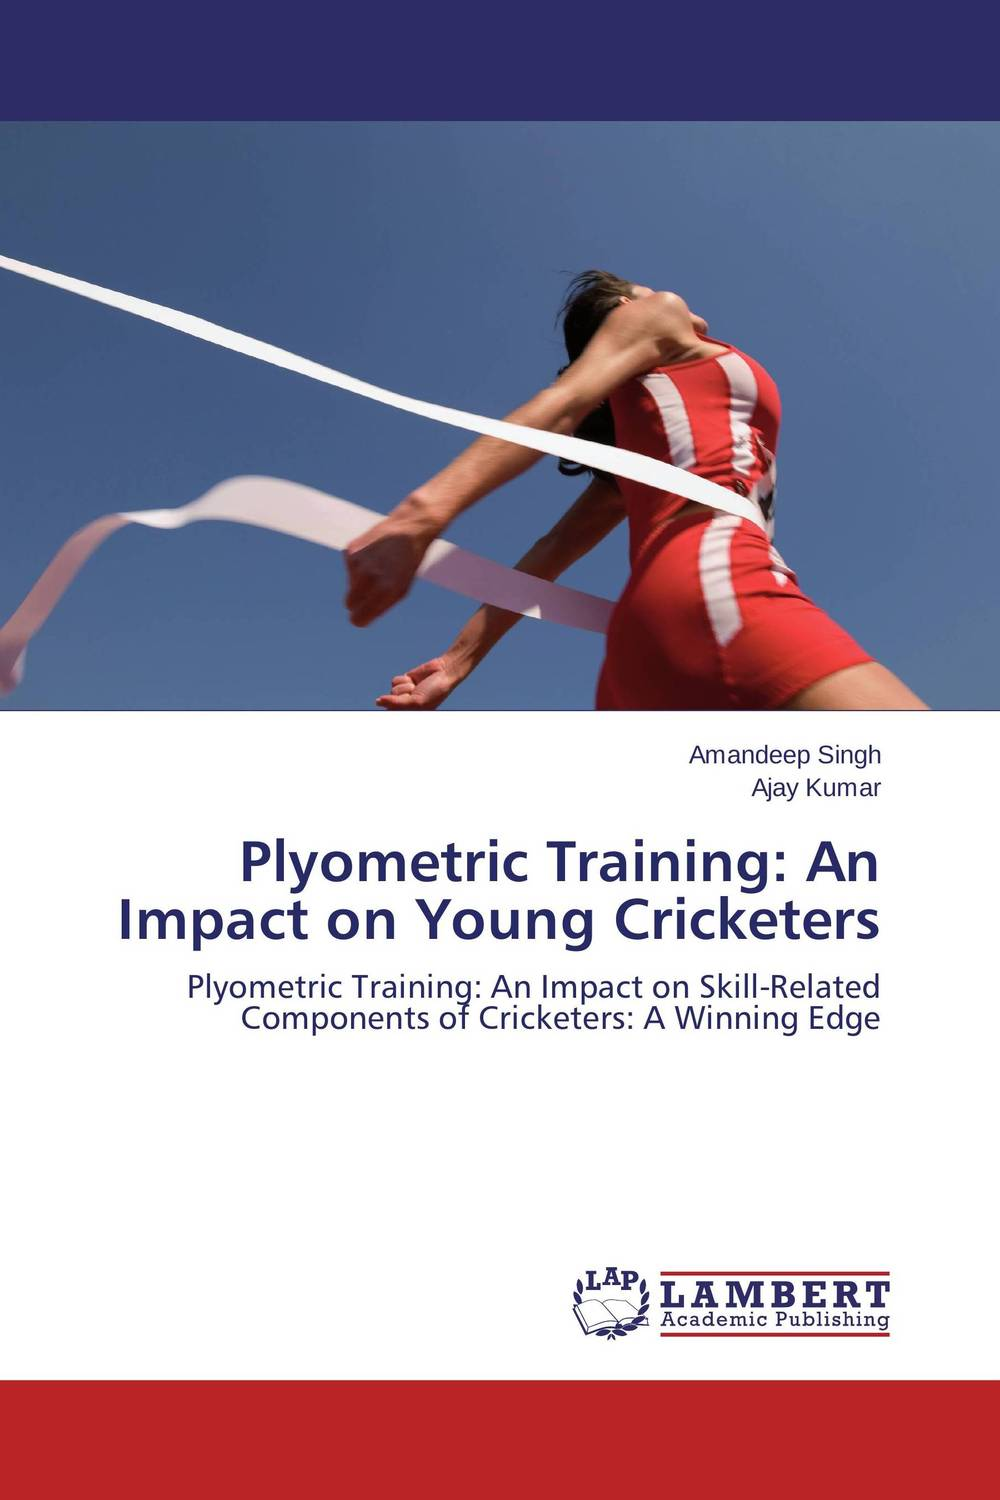 Plyometric Training: An Impact on Young Cricketers